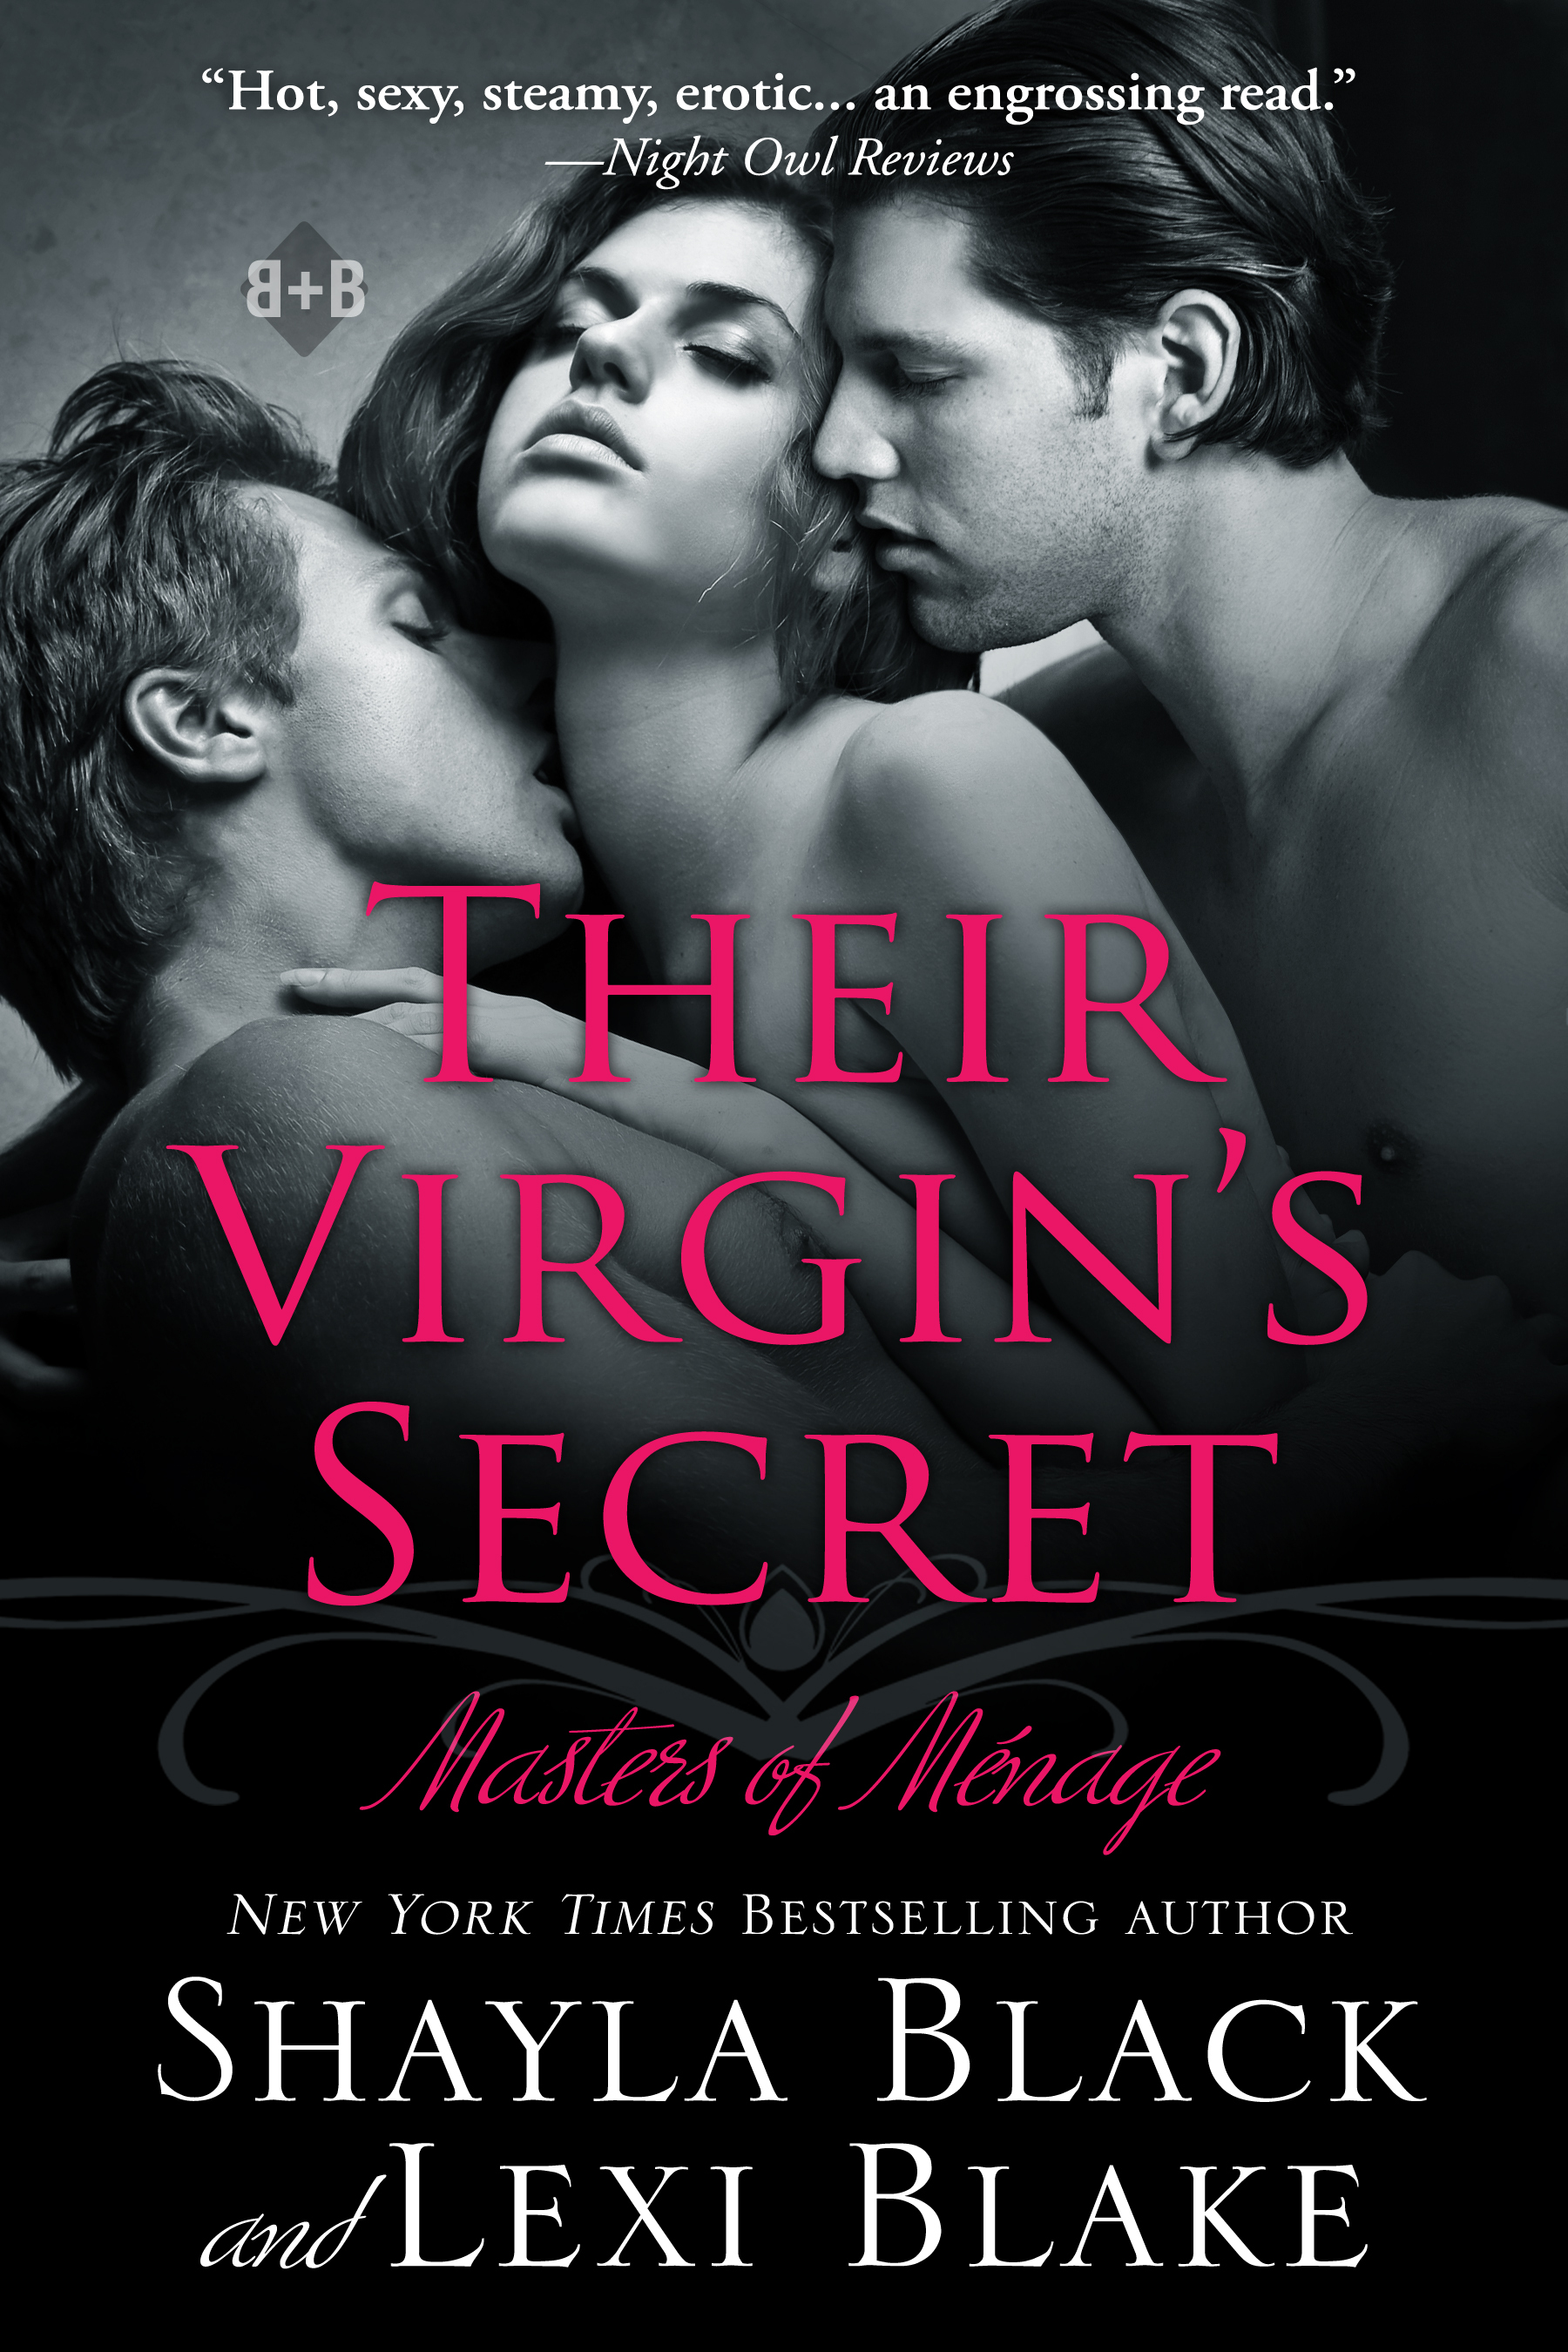 Shayla Black Lexi Blake - Their Virgin's Secret, Masters of Ménage, Book 2